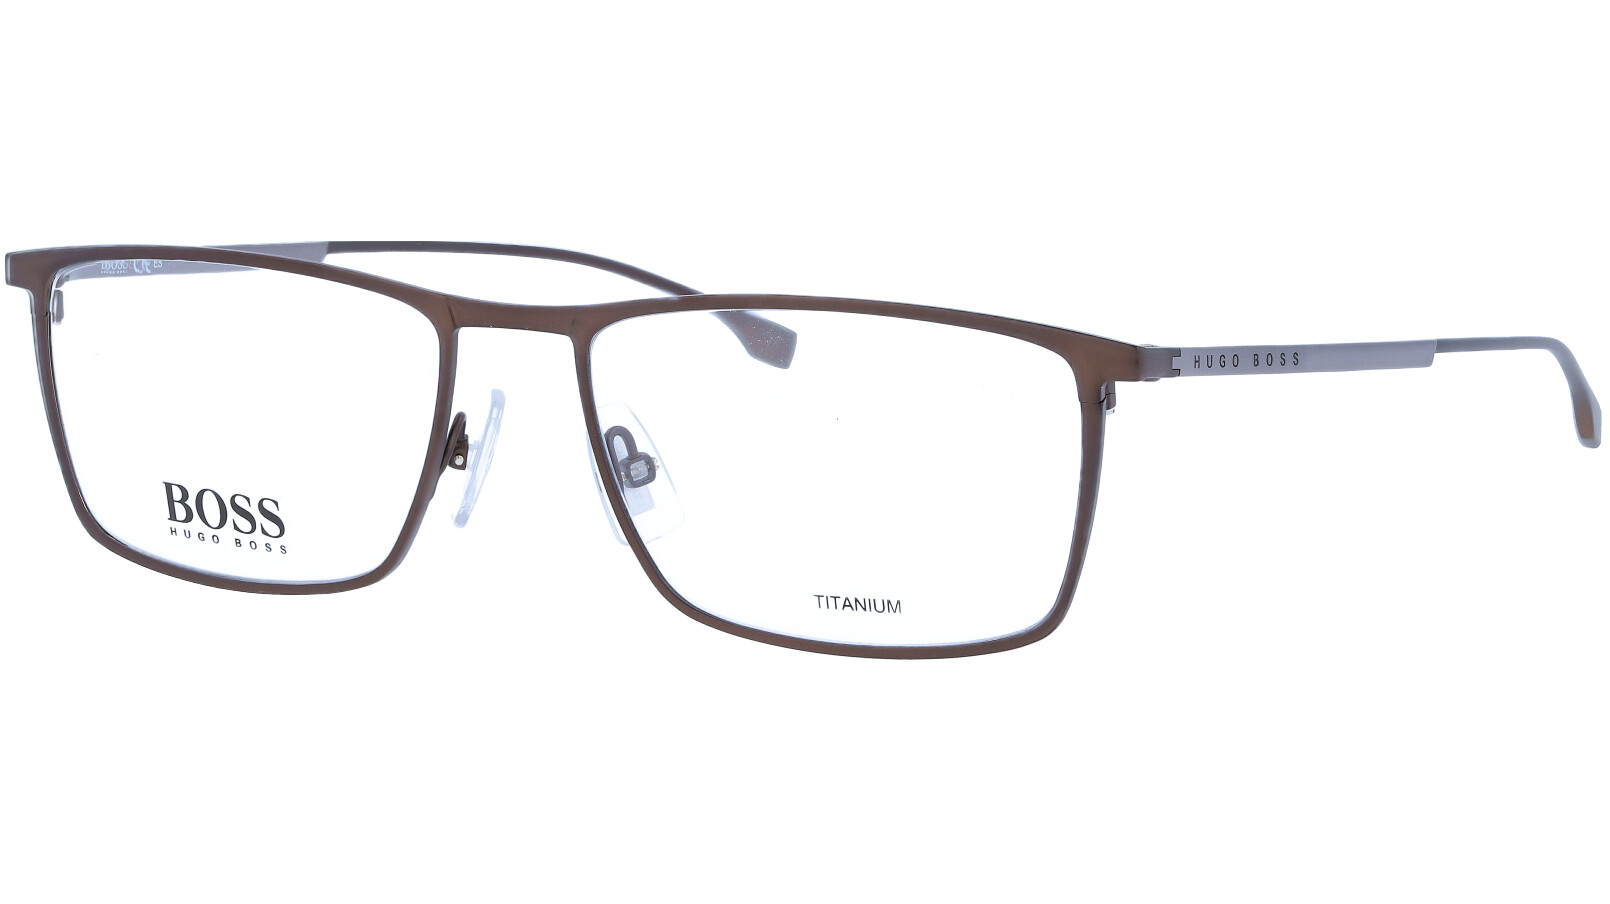 HUGO BOSS BOSS0976 4INMV 55 MATT Glasses